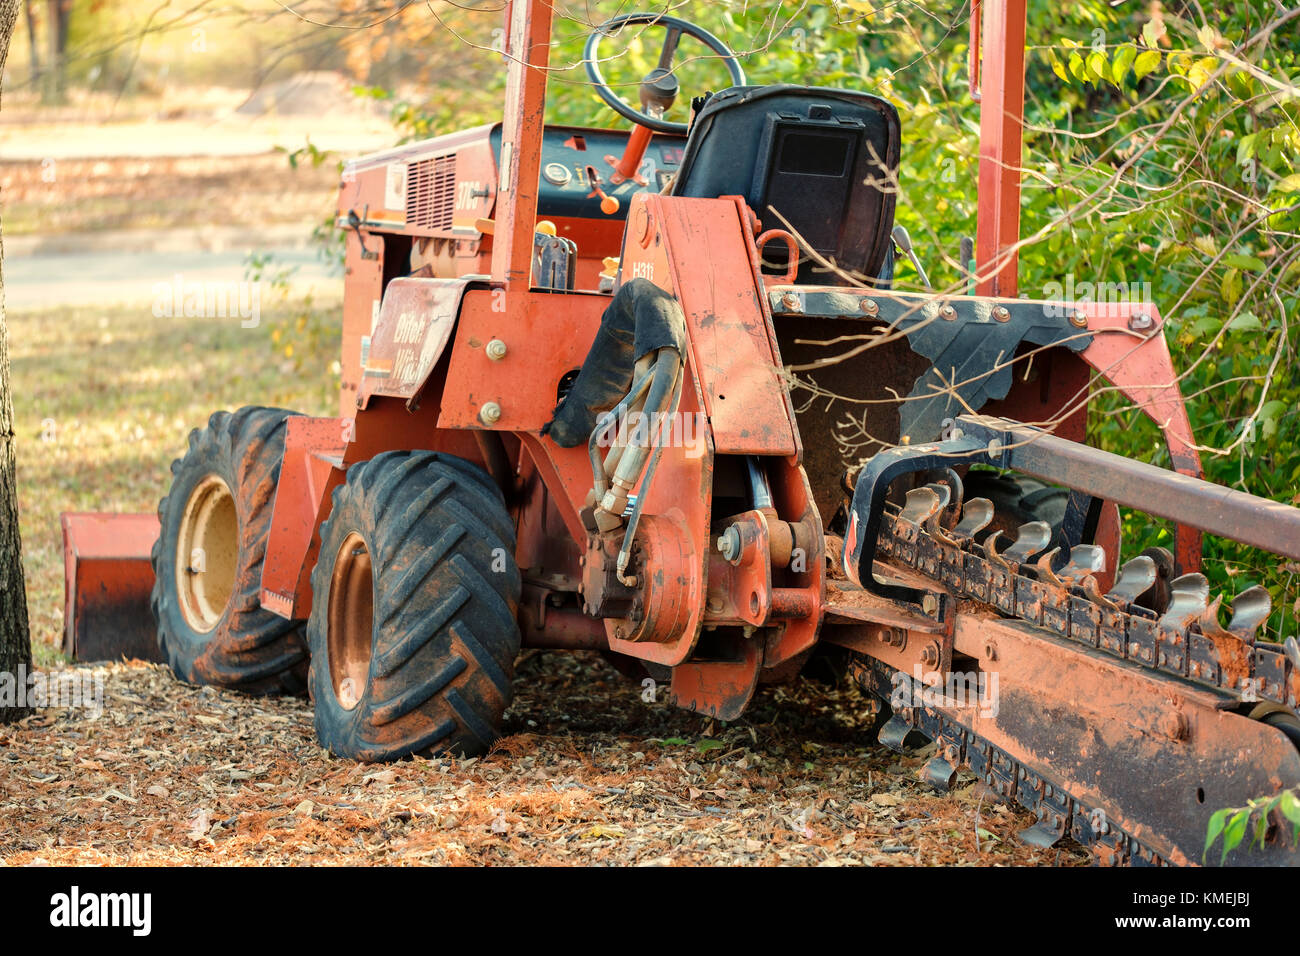 An old Ditch Witch trenching machine tractor used for gardening work